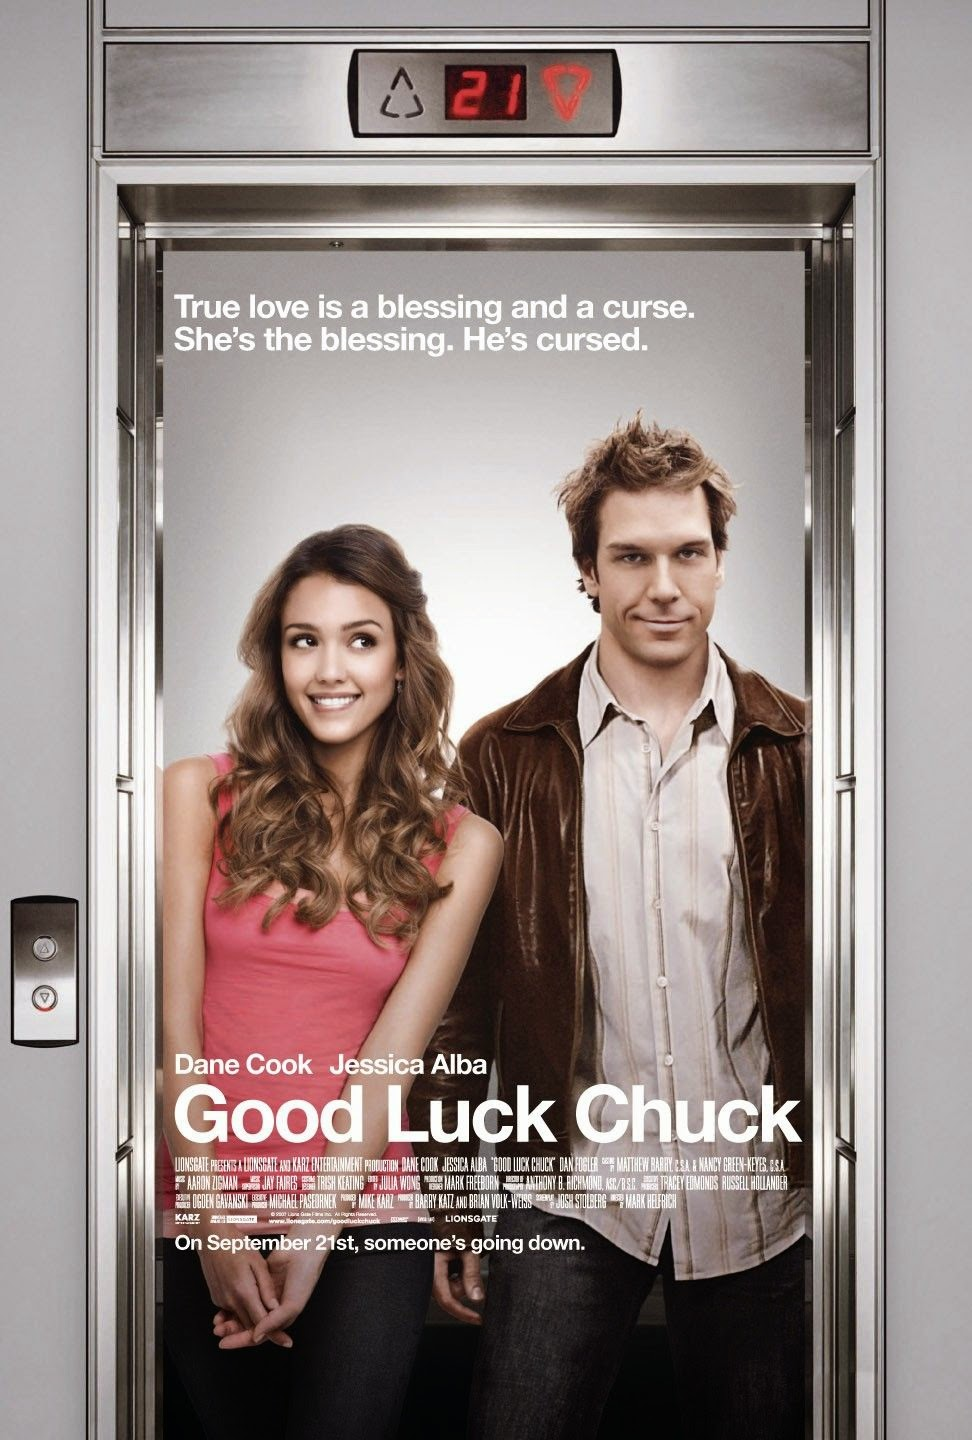 d453d22dcecb Good Luck Chuck (2007) Trailer